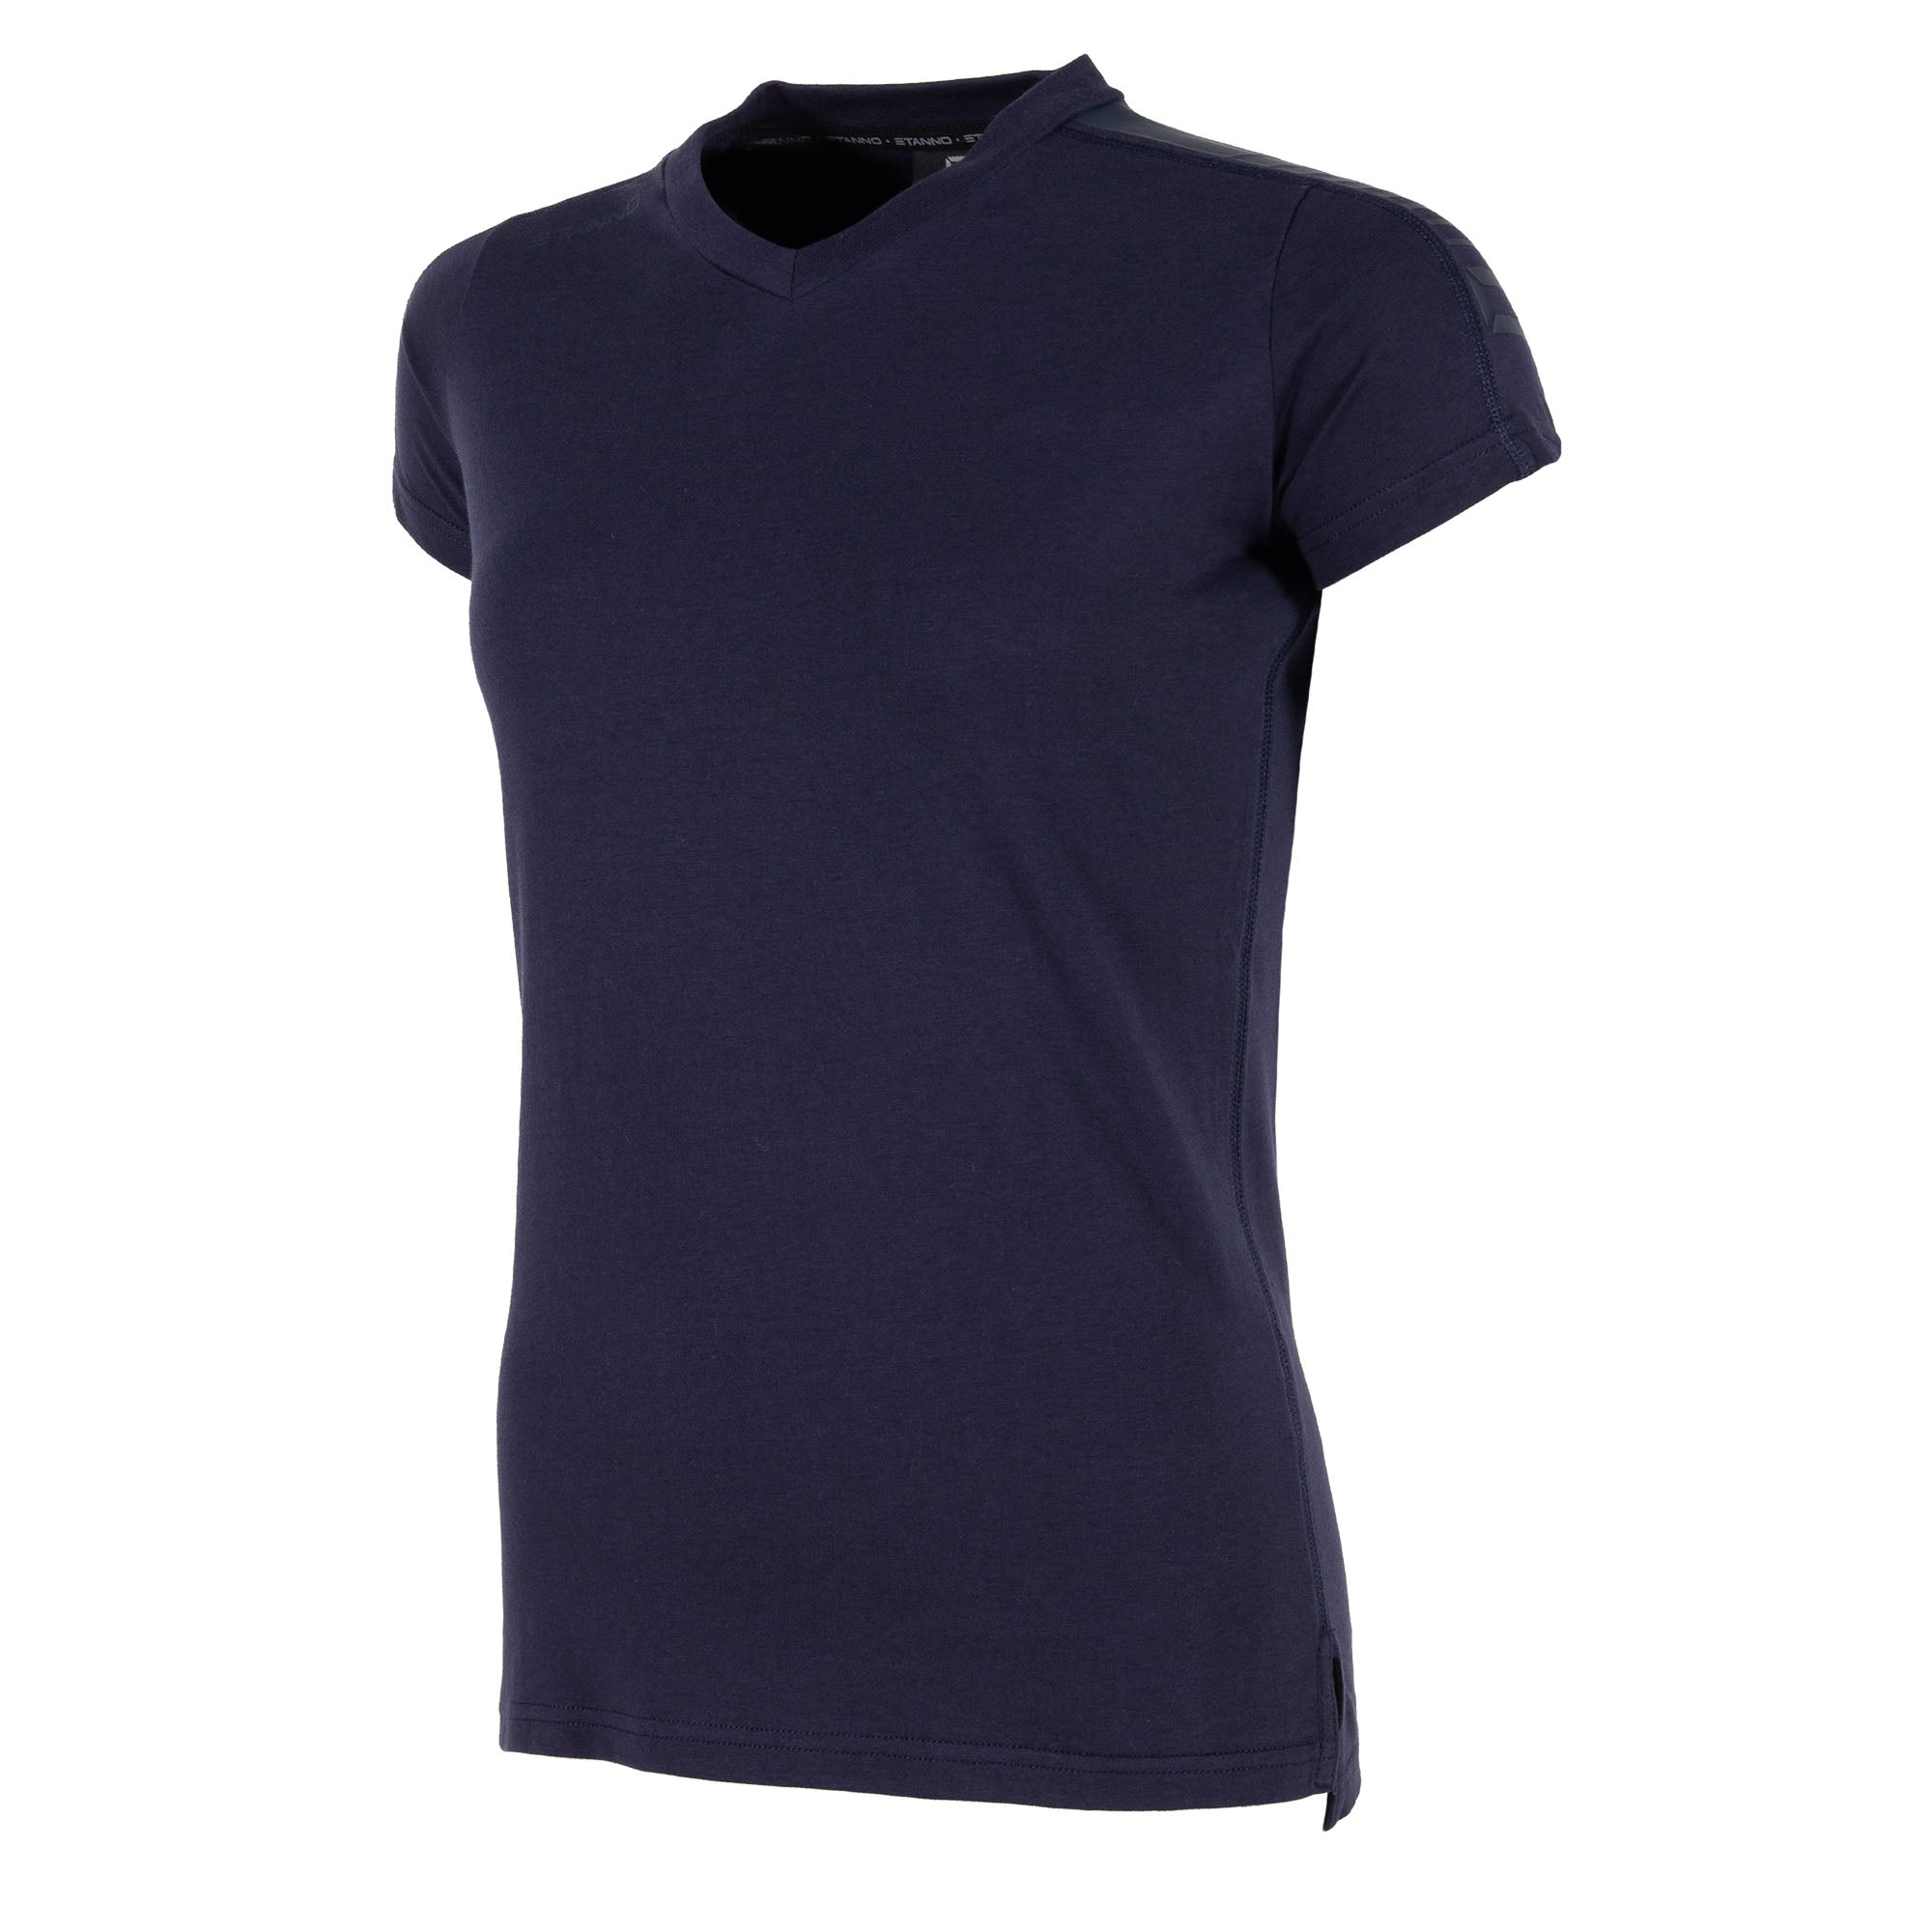 Front view of navy Stanno Ease T-Shirt Ladies with v-neck, side slit design, and subtle shoulder print.